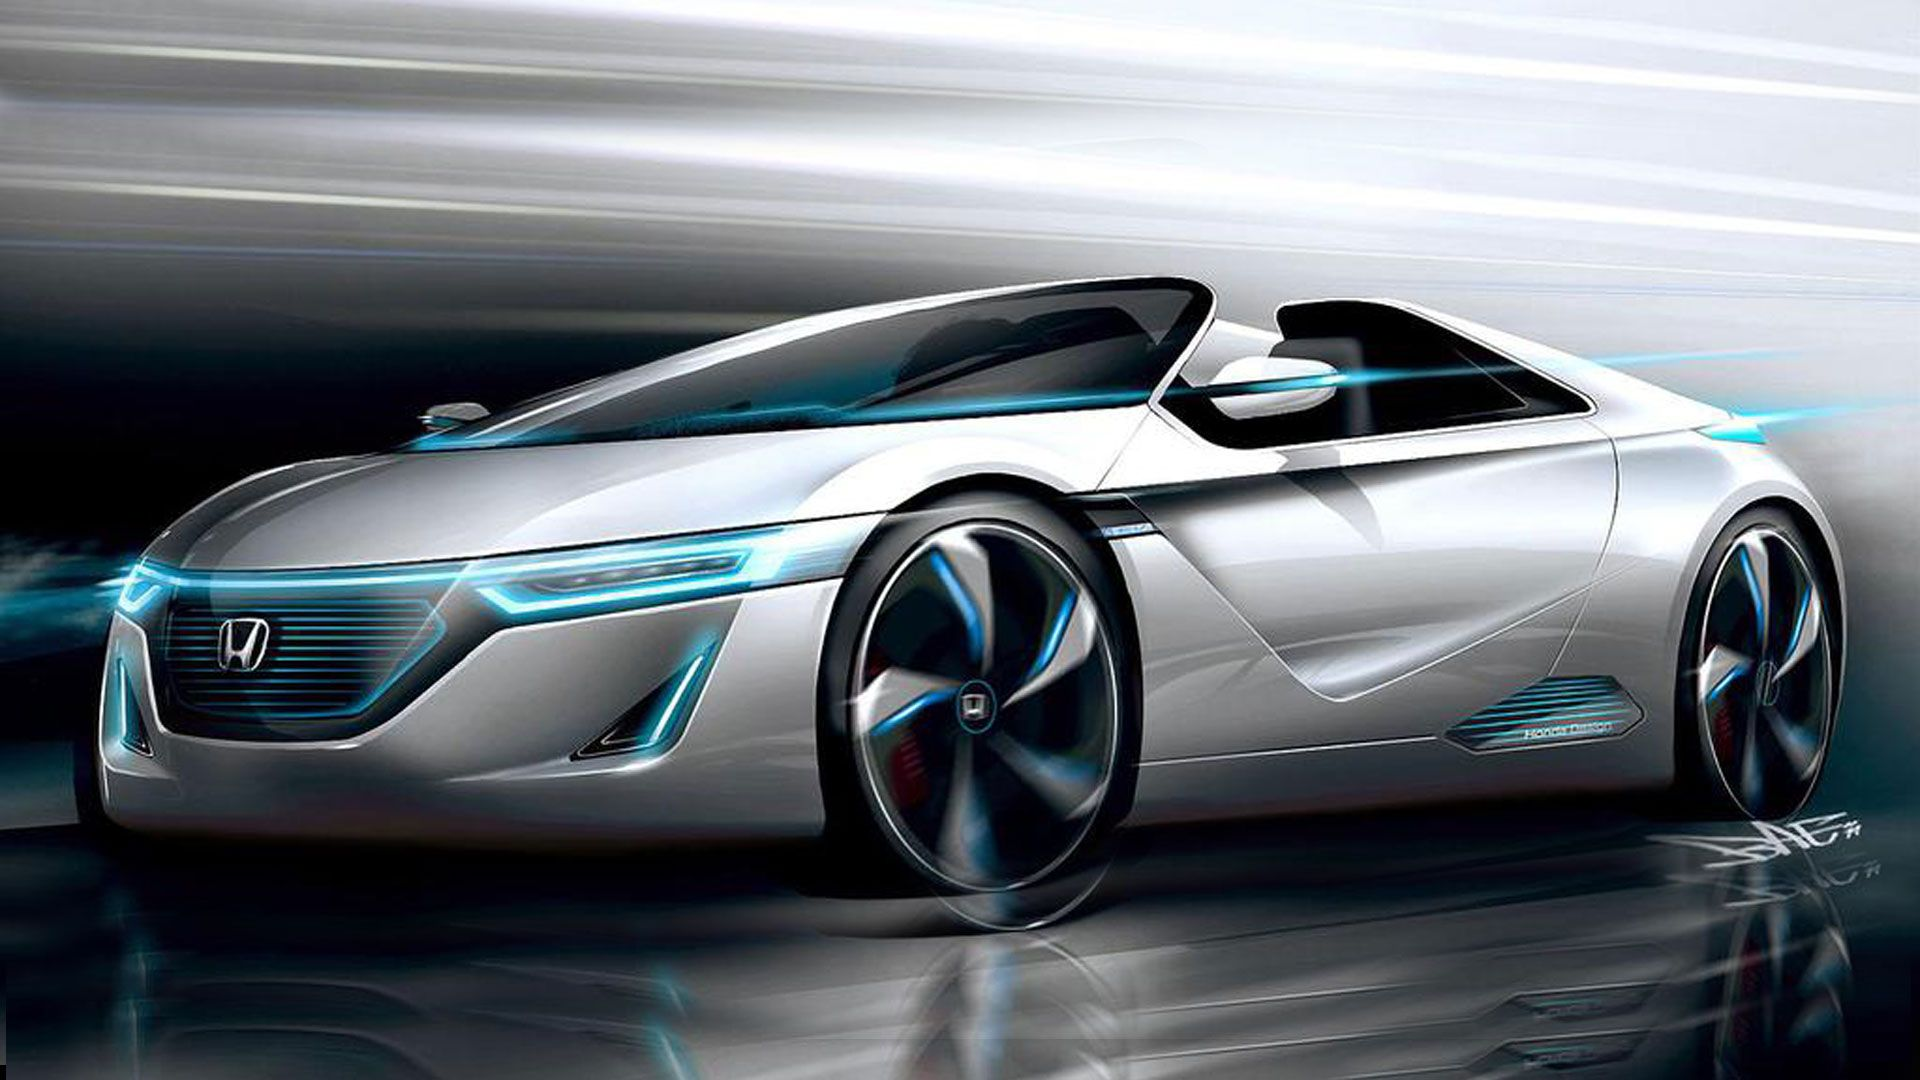 Honda Electric Car Hd Pics Http Wallucky Com Honda Electric